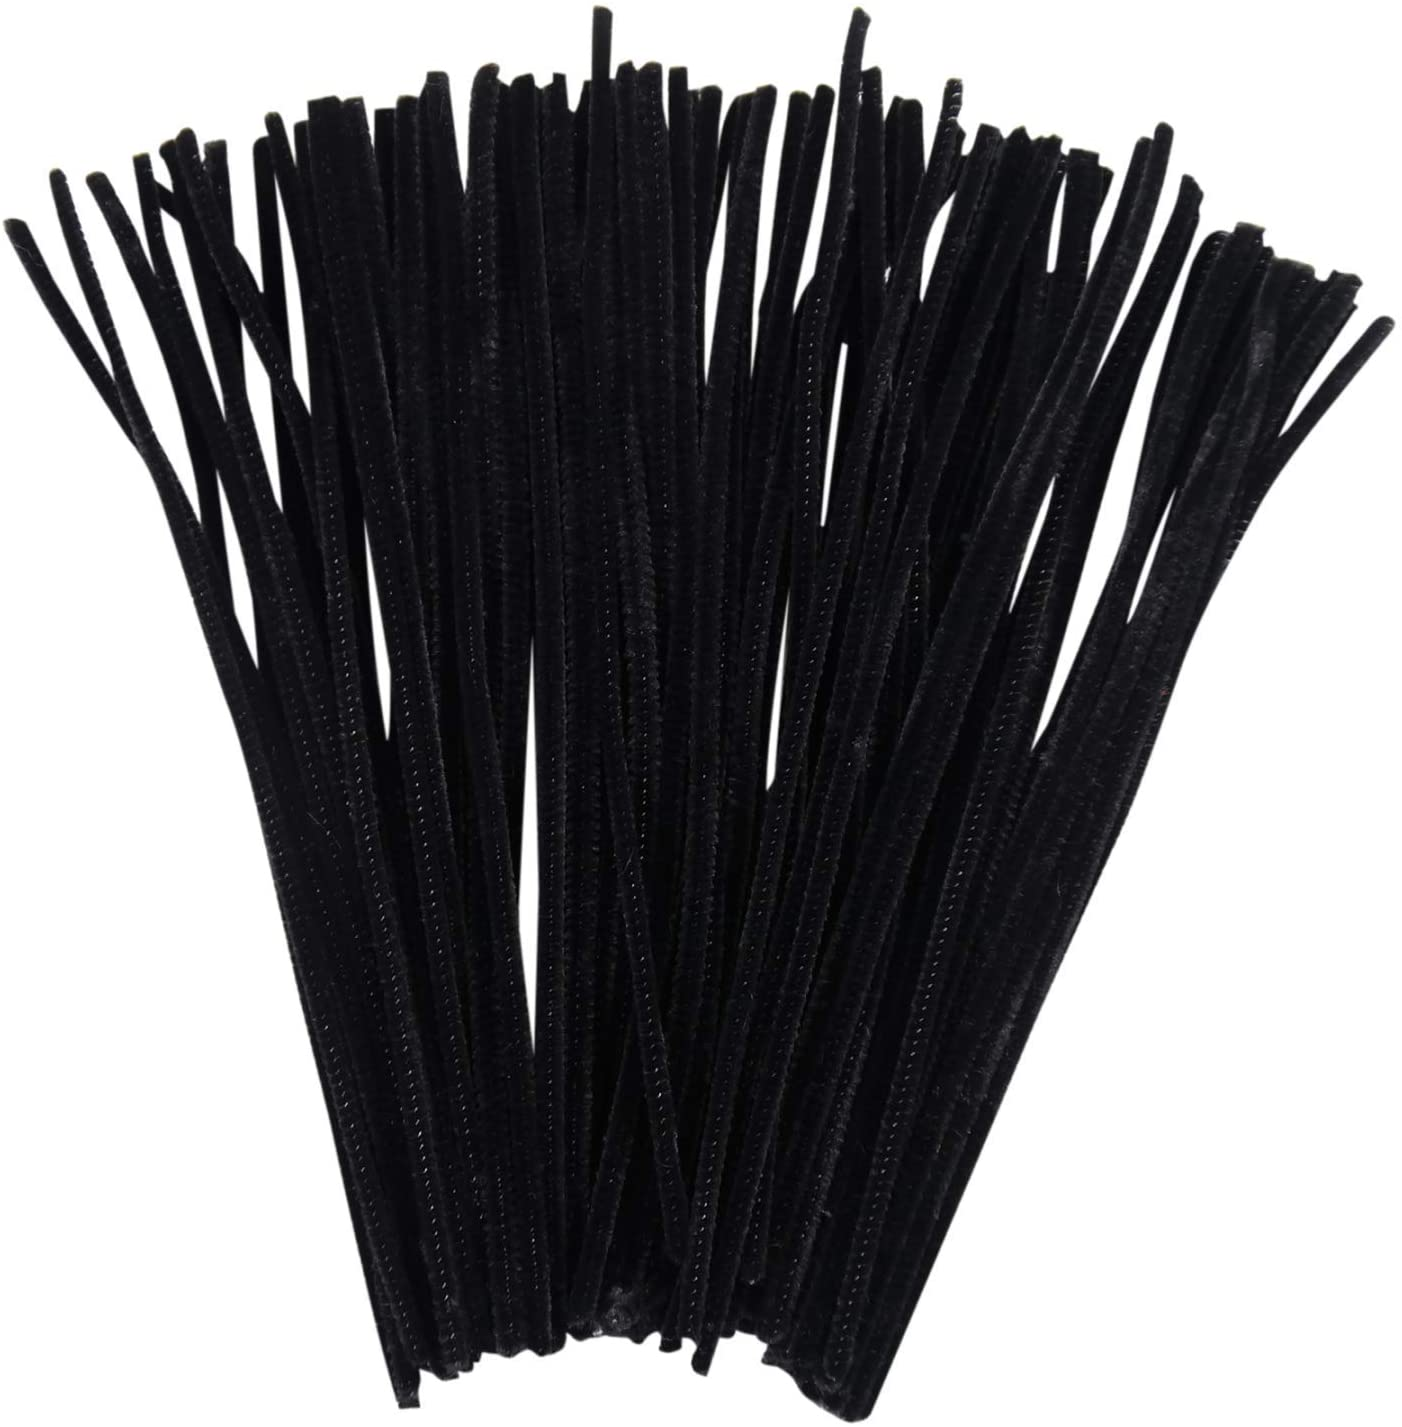 Creation Stations Luxury Pipe Cleaners, 300mm x 6mm, Black, us:one size, 100 Piece